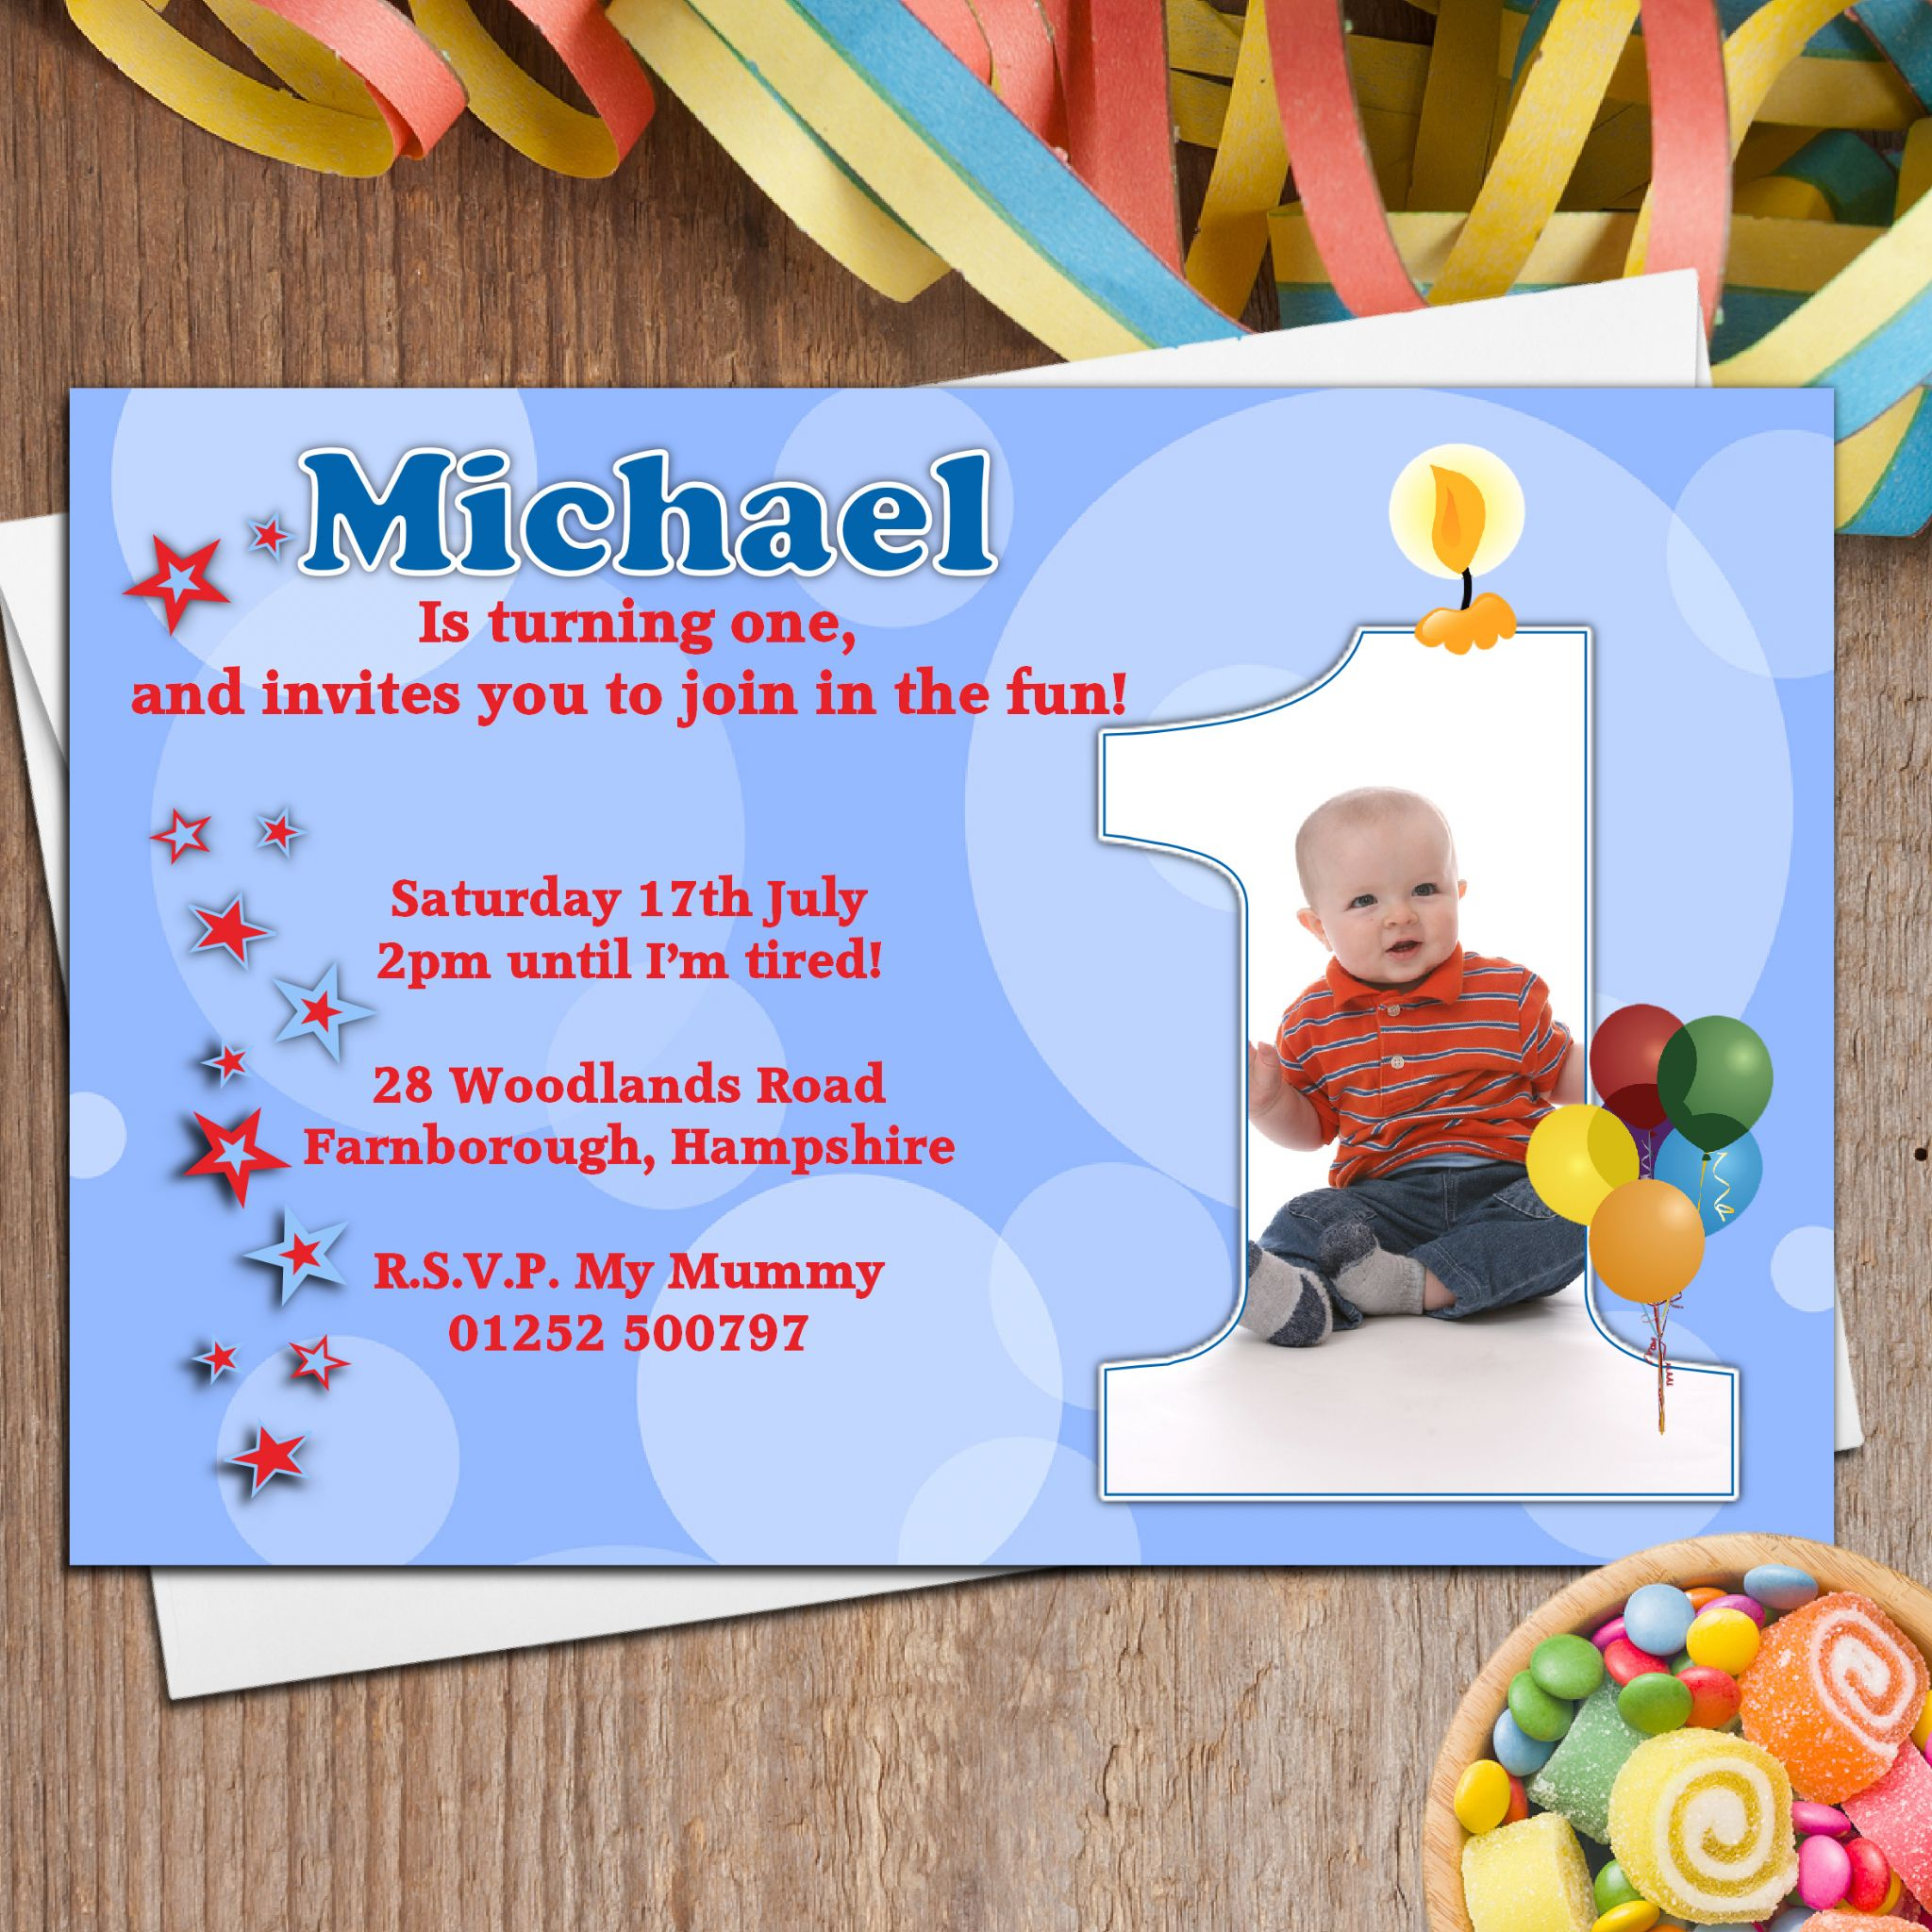 1st birthday greeting cards for baby boy ; 10-boys-personalised-first-1st-birthday-party-photo-invitations-n19-4711-p